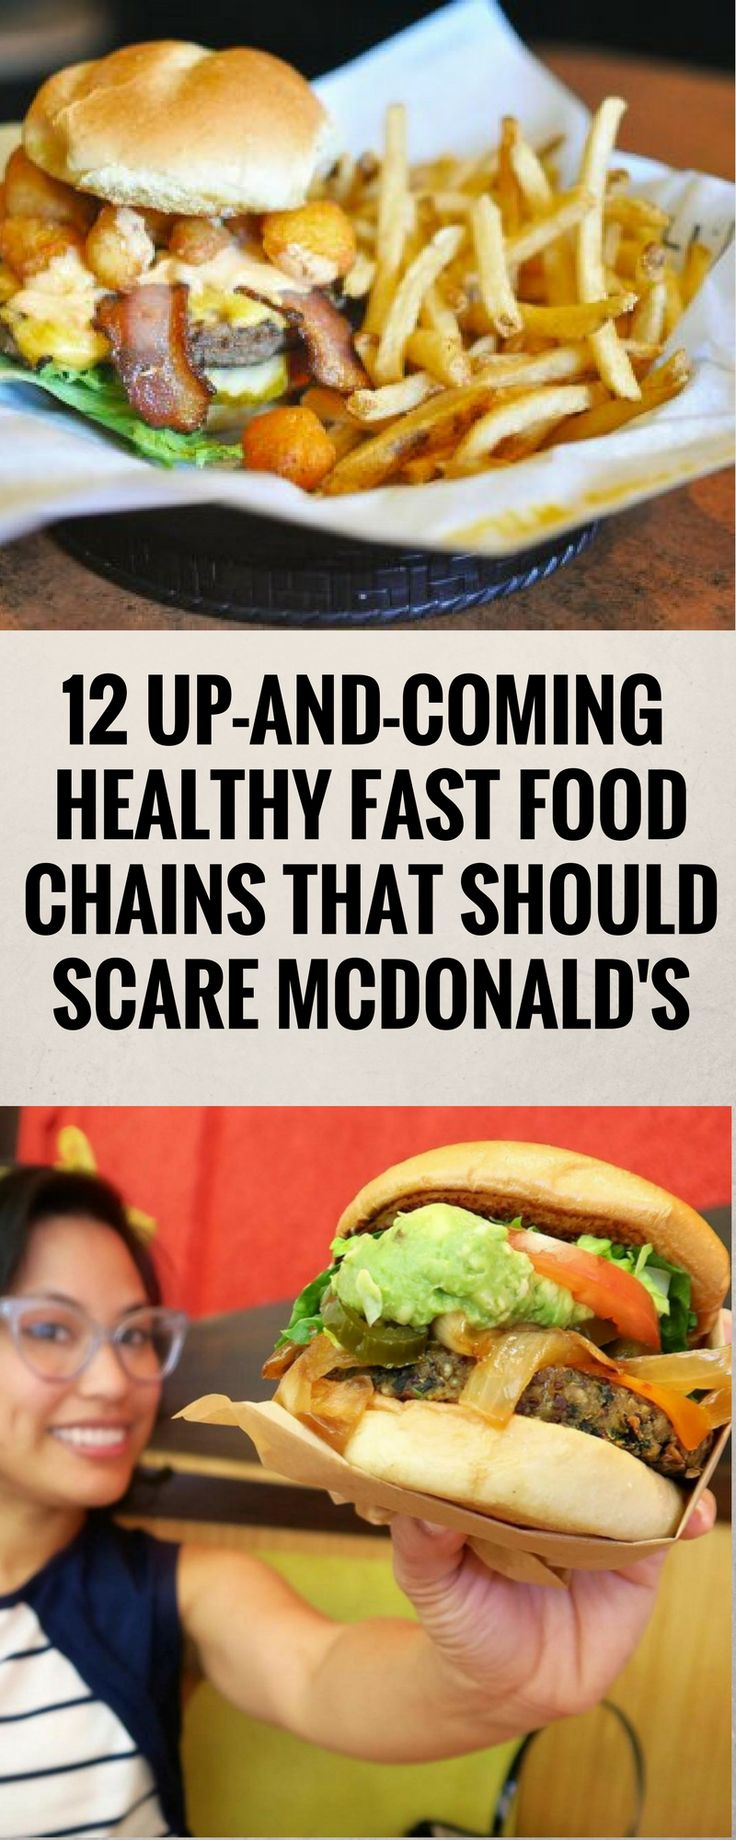 12 up-and-coming healthy fast food chains that should scare McDonald's /.